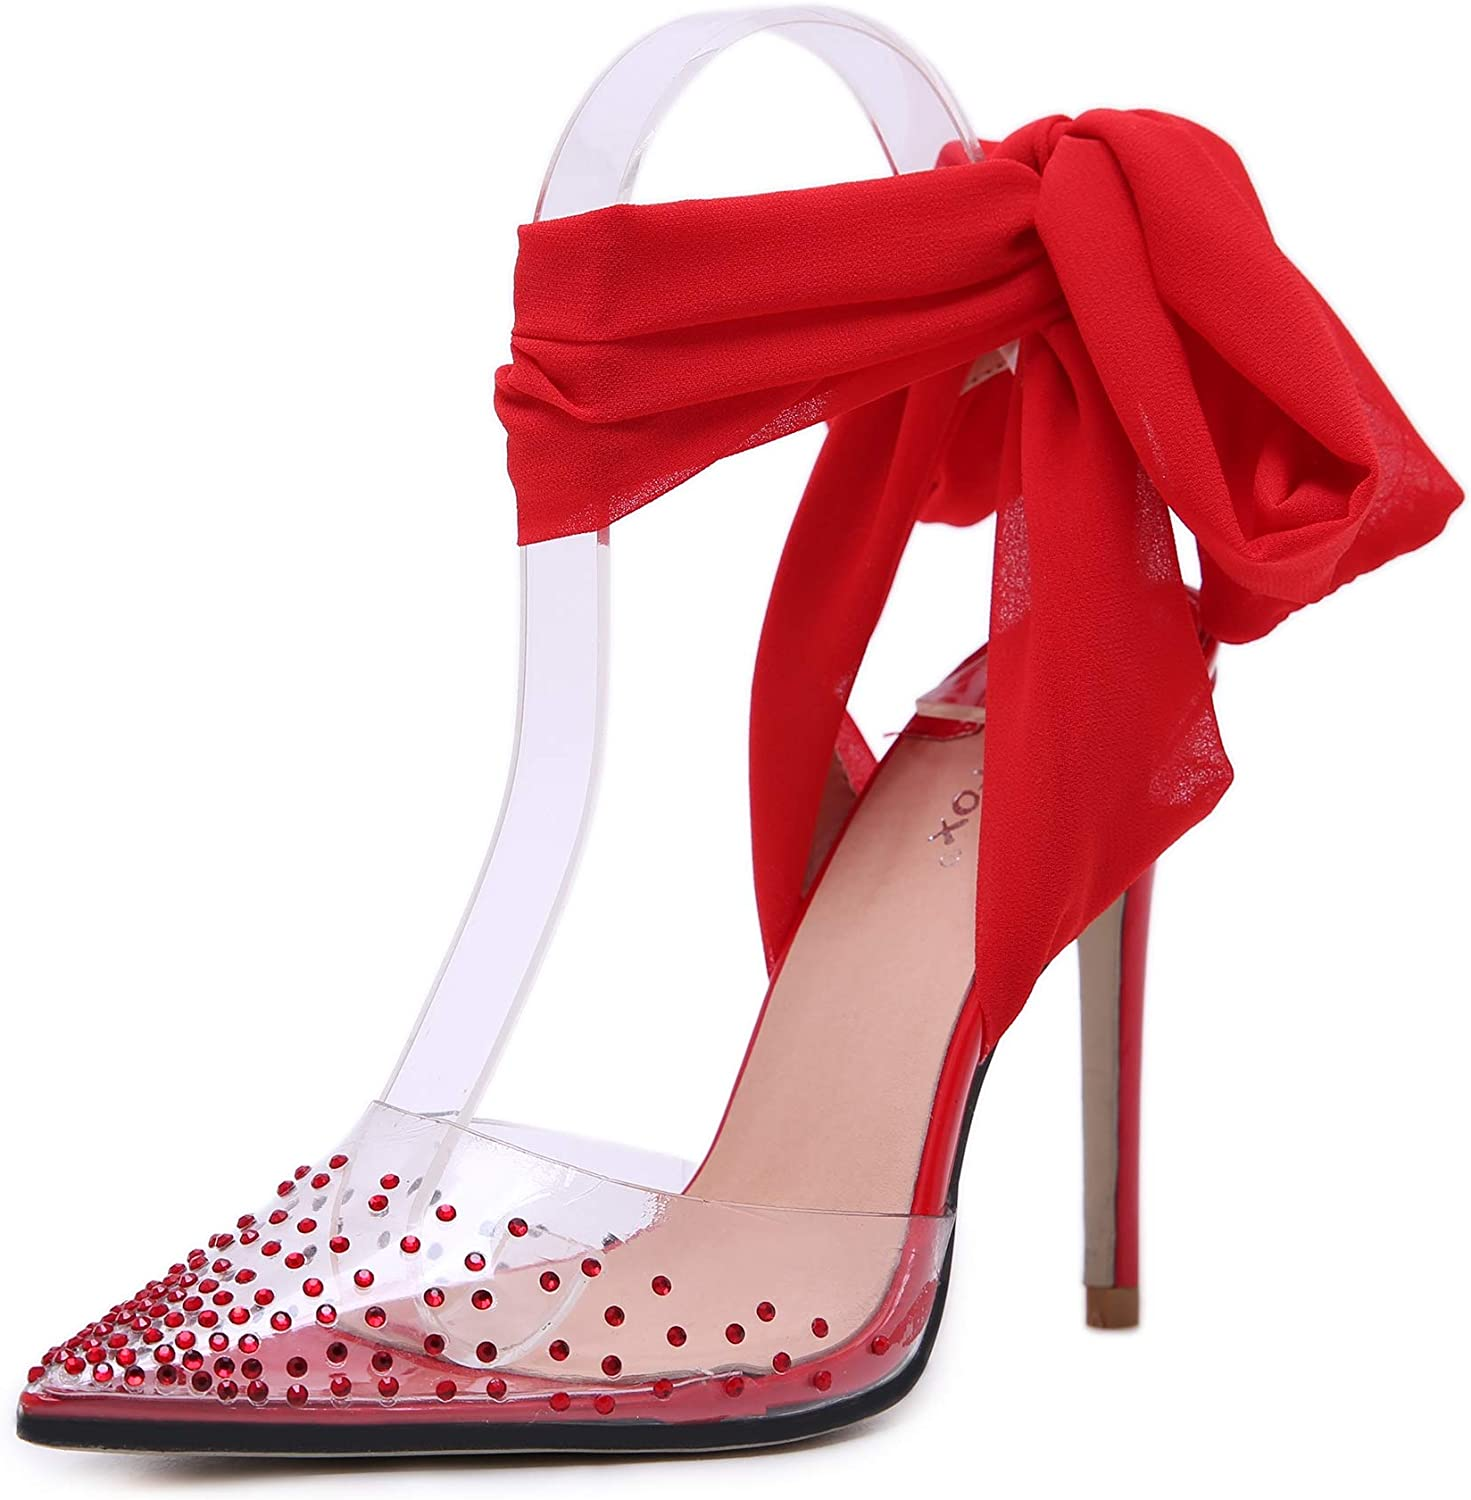 Women's Sandals - Rhinestone Ribbon Pointed Pins High Heel shoes Shallow Mouth shoes